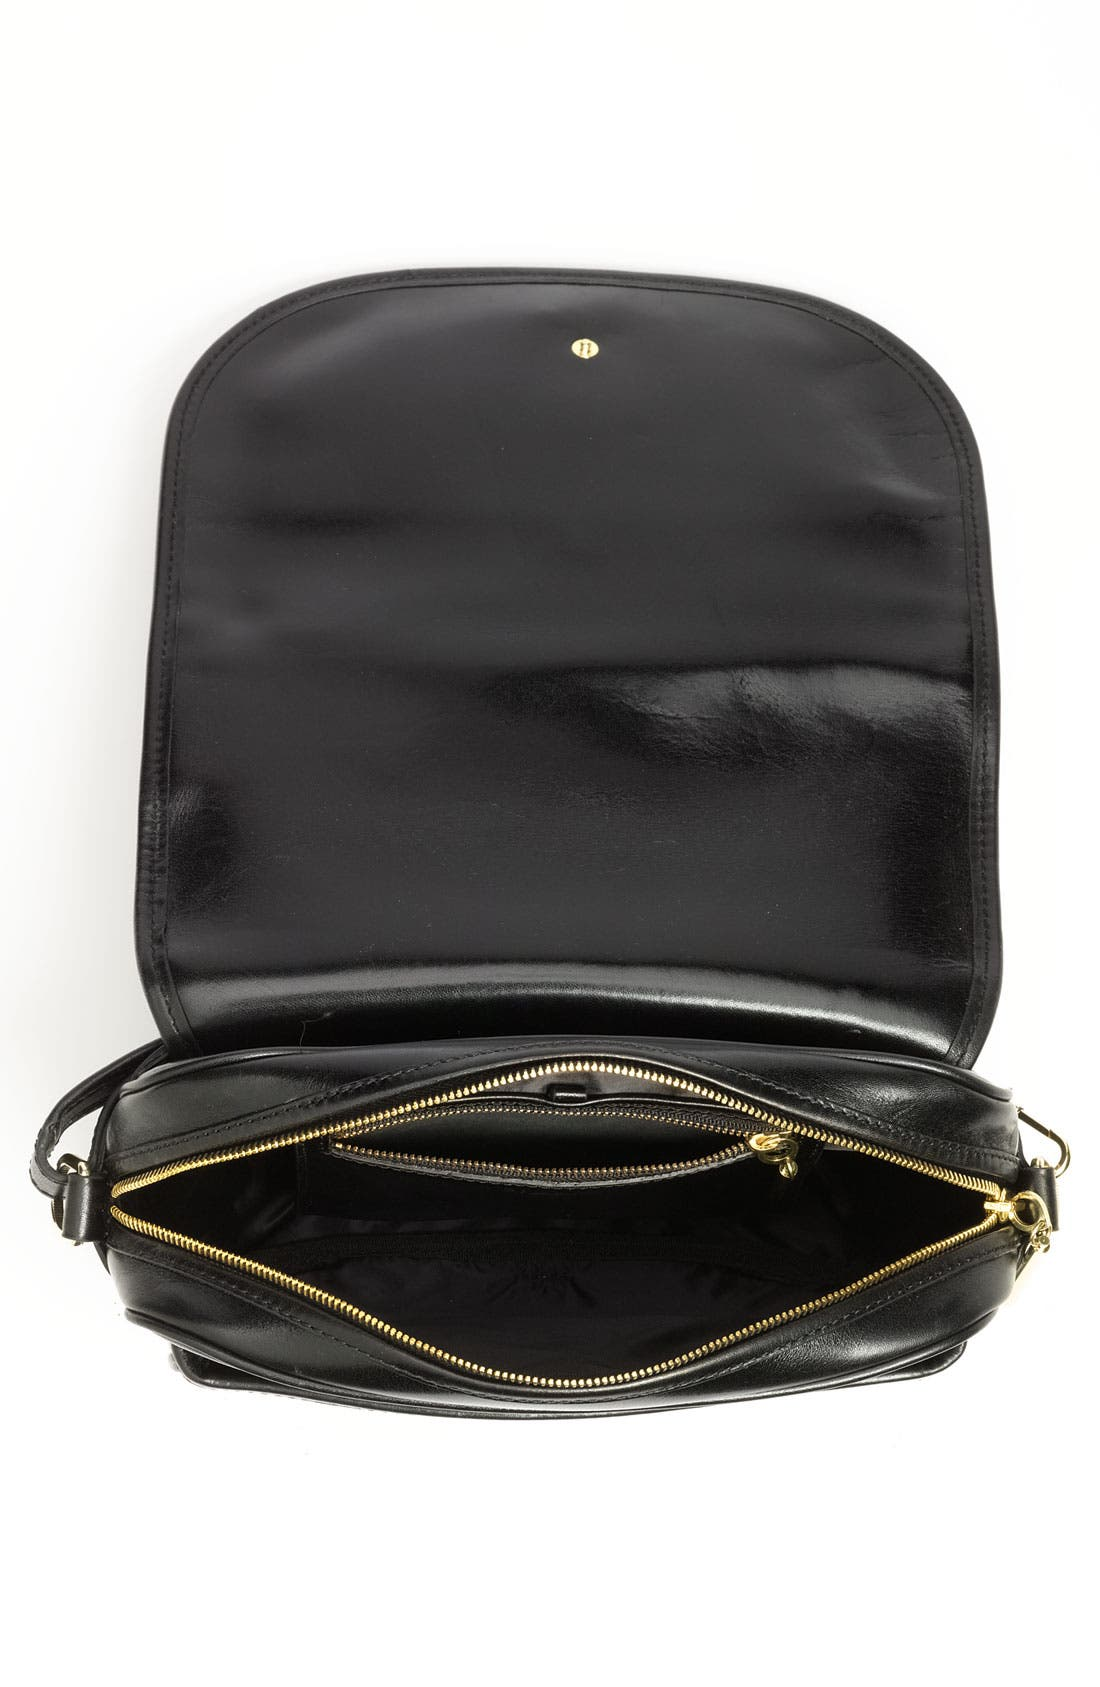 Alternate Image 3  - 3.1 Phillip Lim 'Vendetta - Large' Leather Shoulder Bag